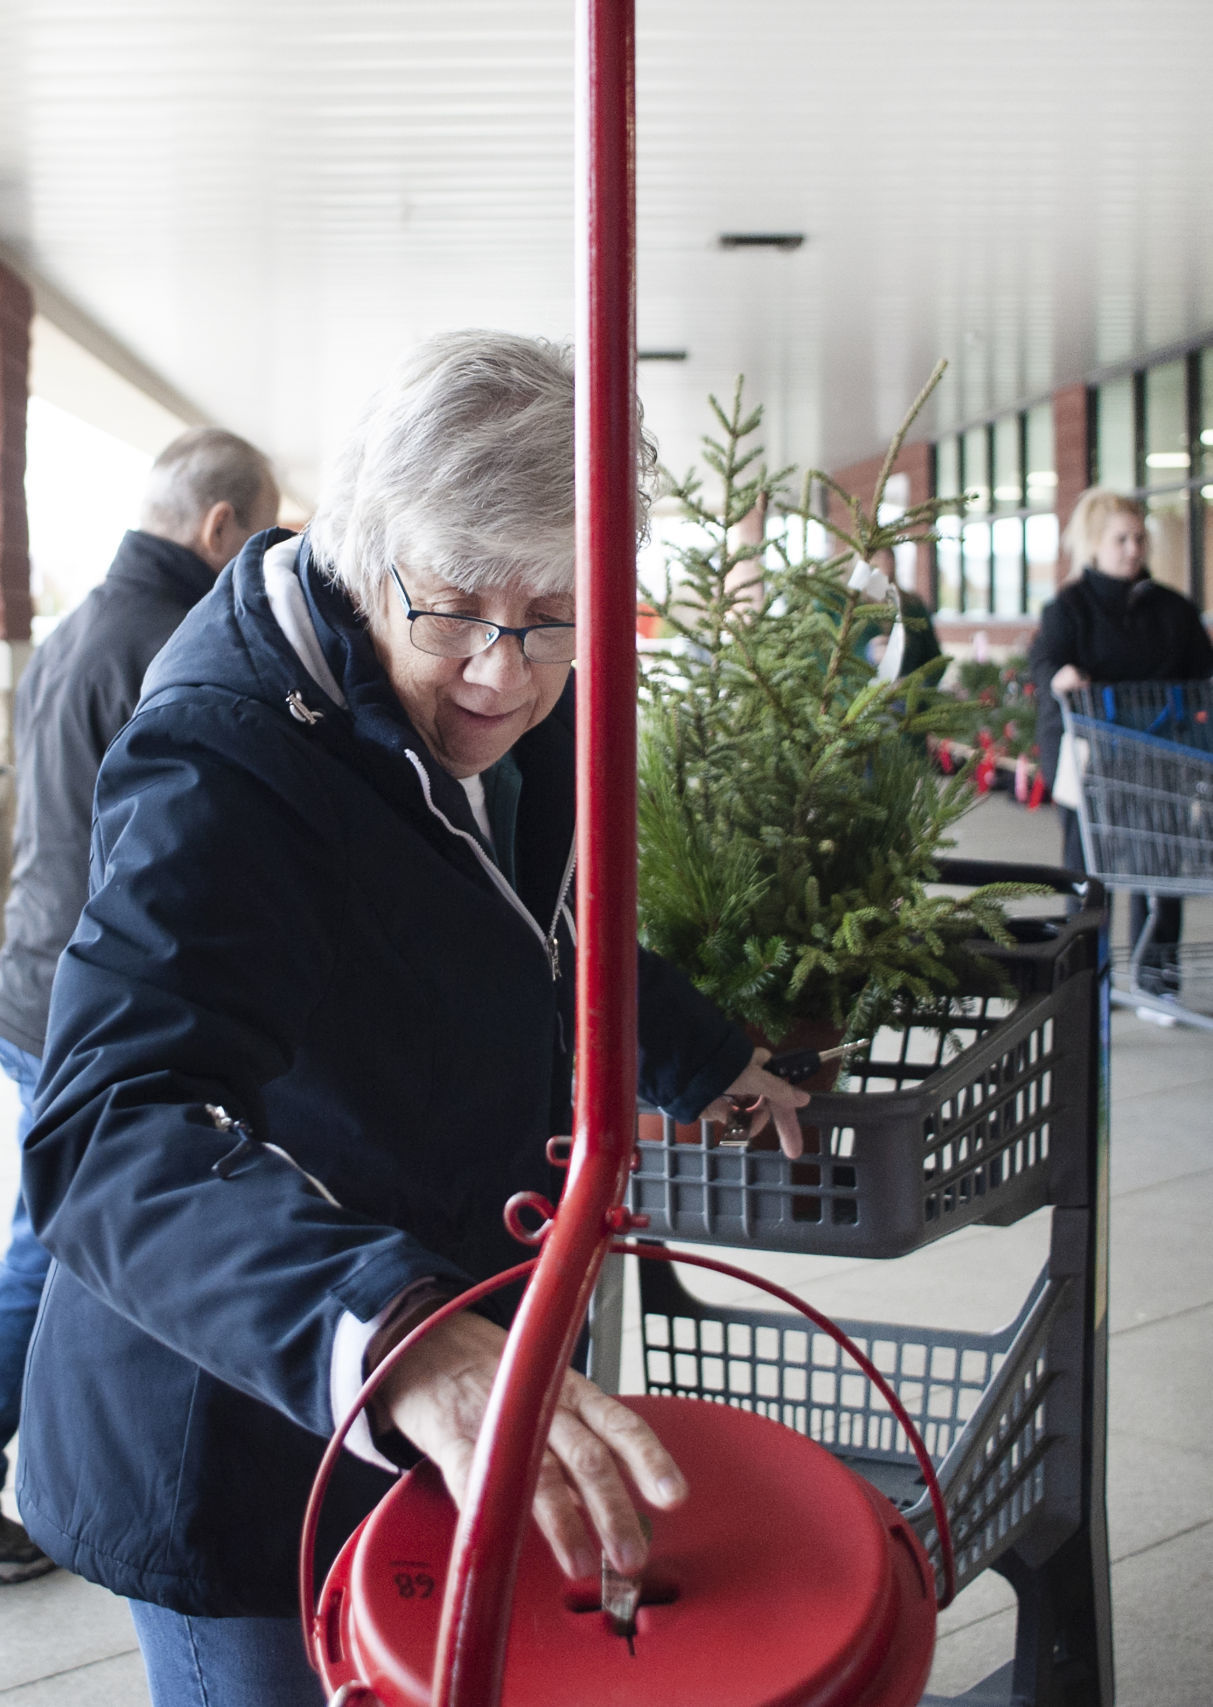 01STOCK_SALVATION_ARMY_KETTLE